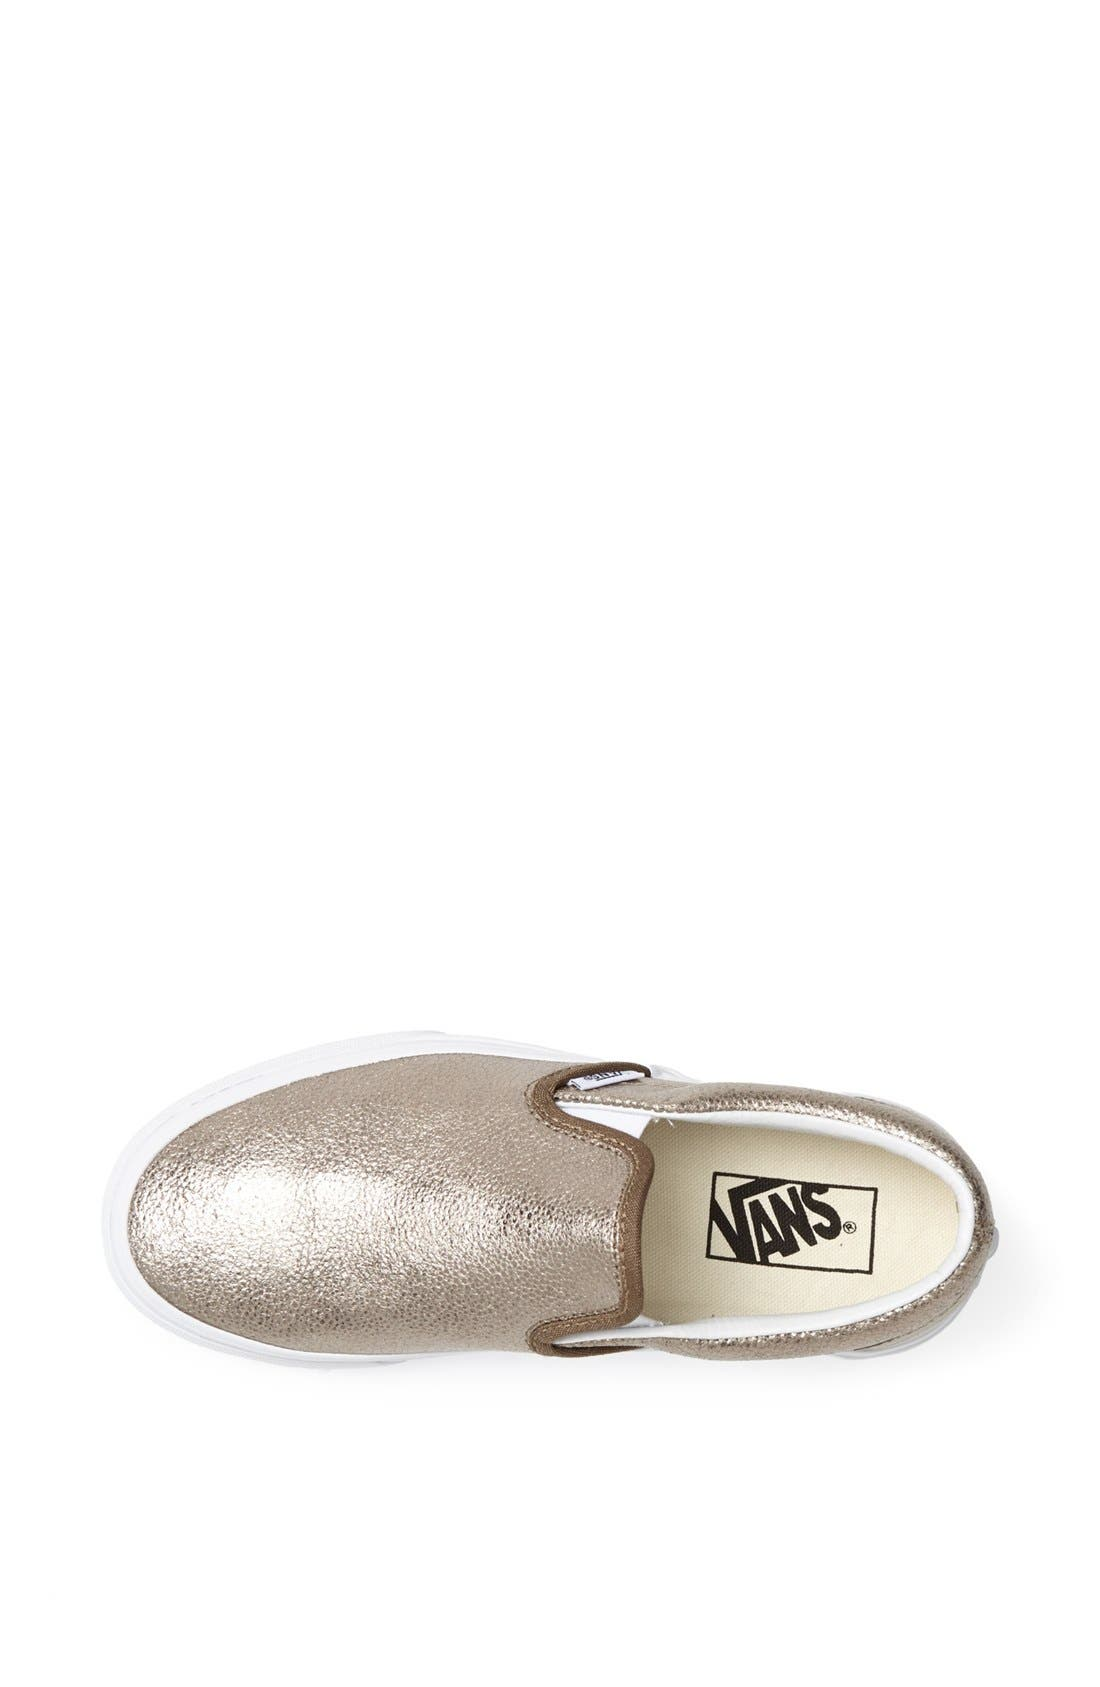 Alternate Image 3  - Vans Metallic Slip-On Sneaker (Women)